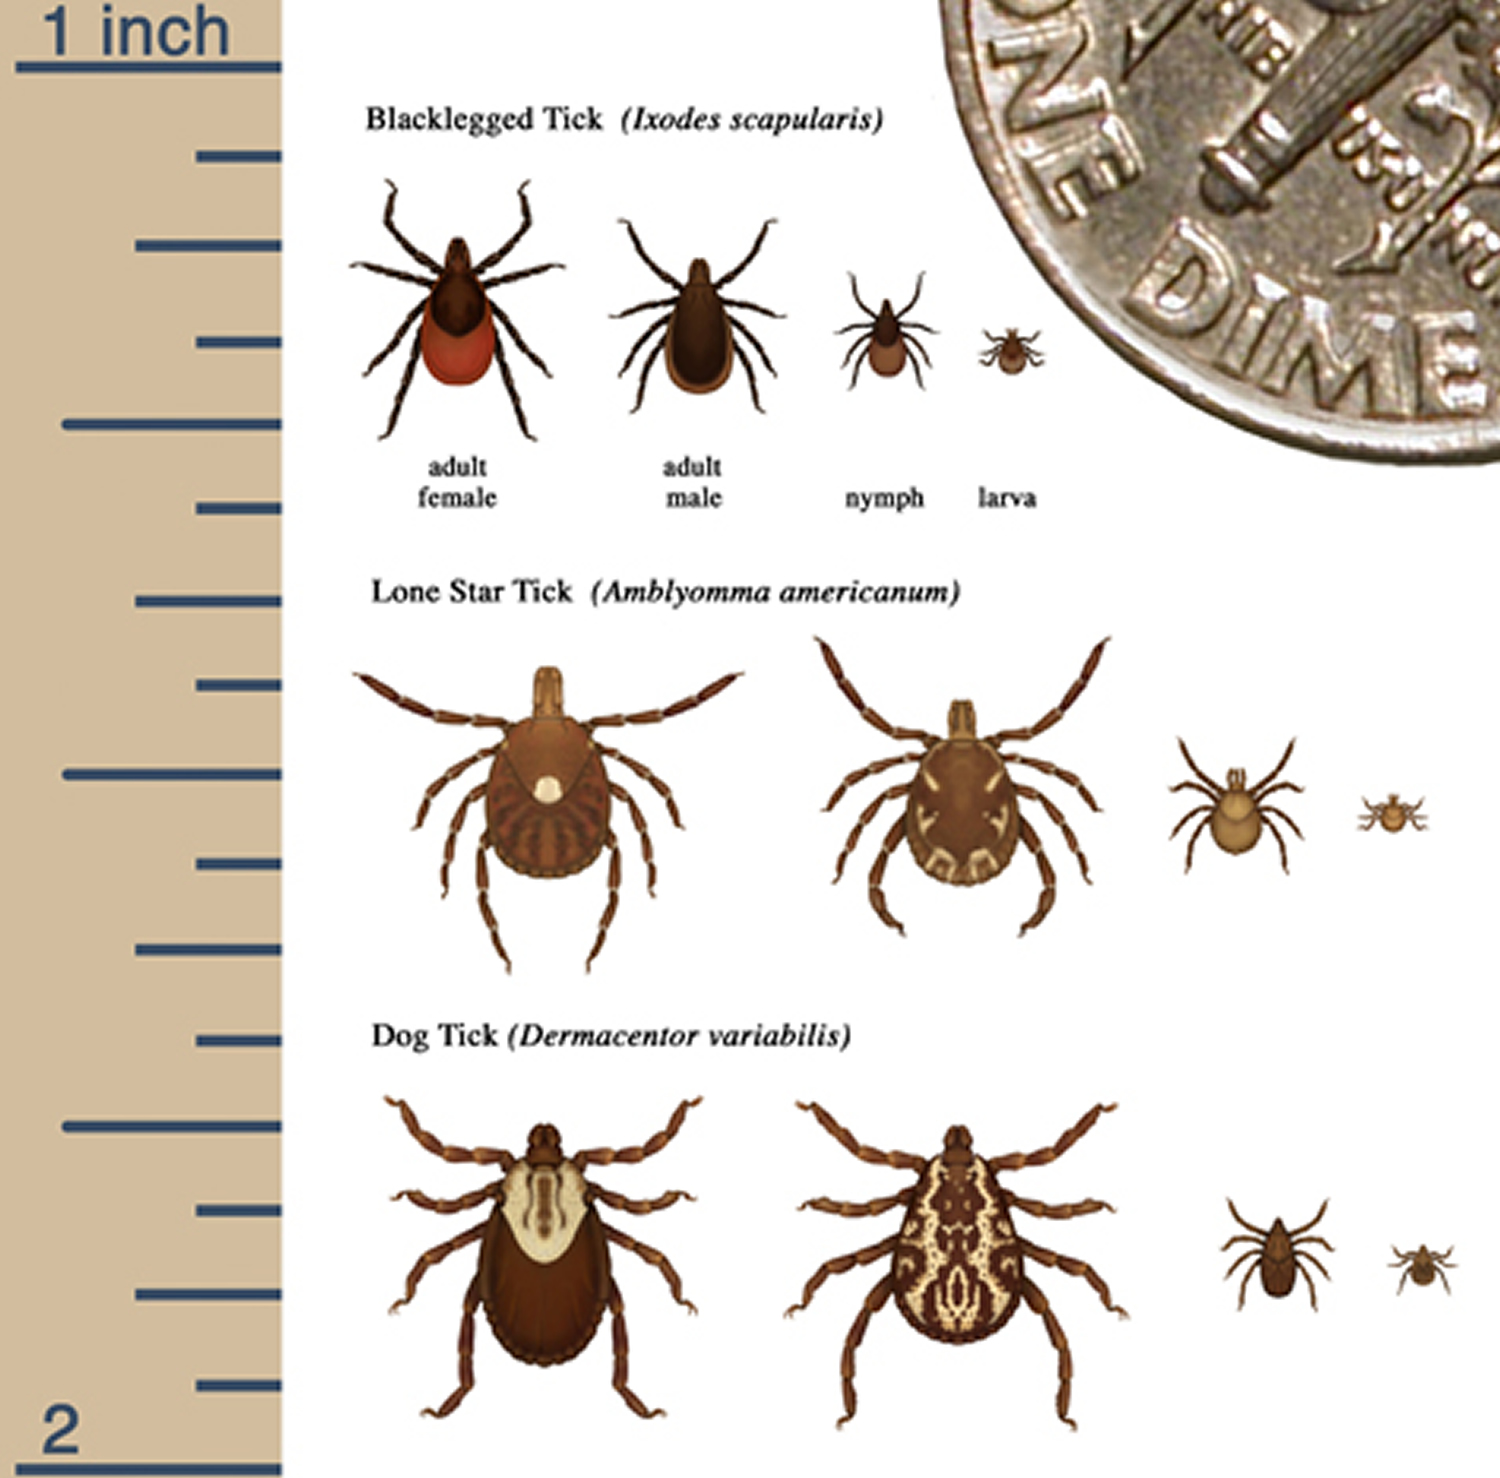 sizes of several ticks at different life stages